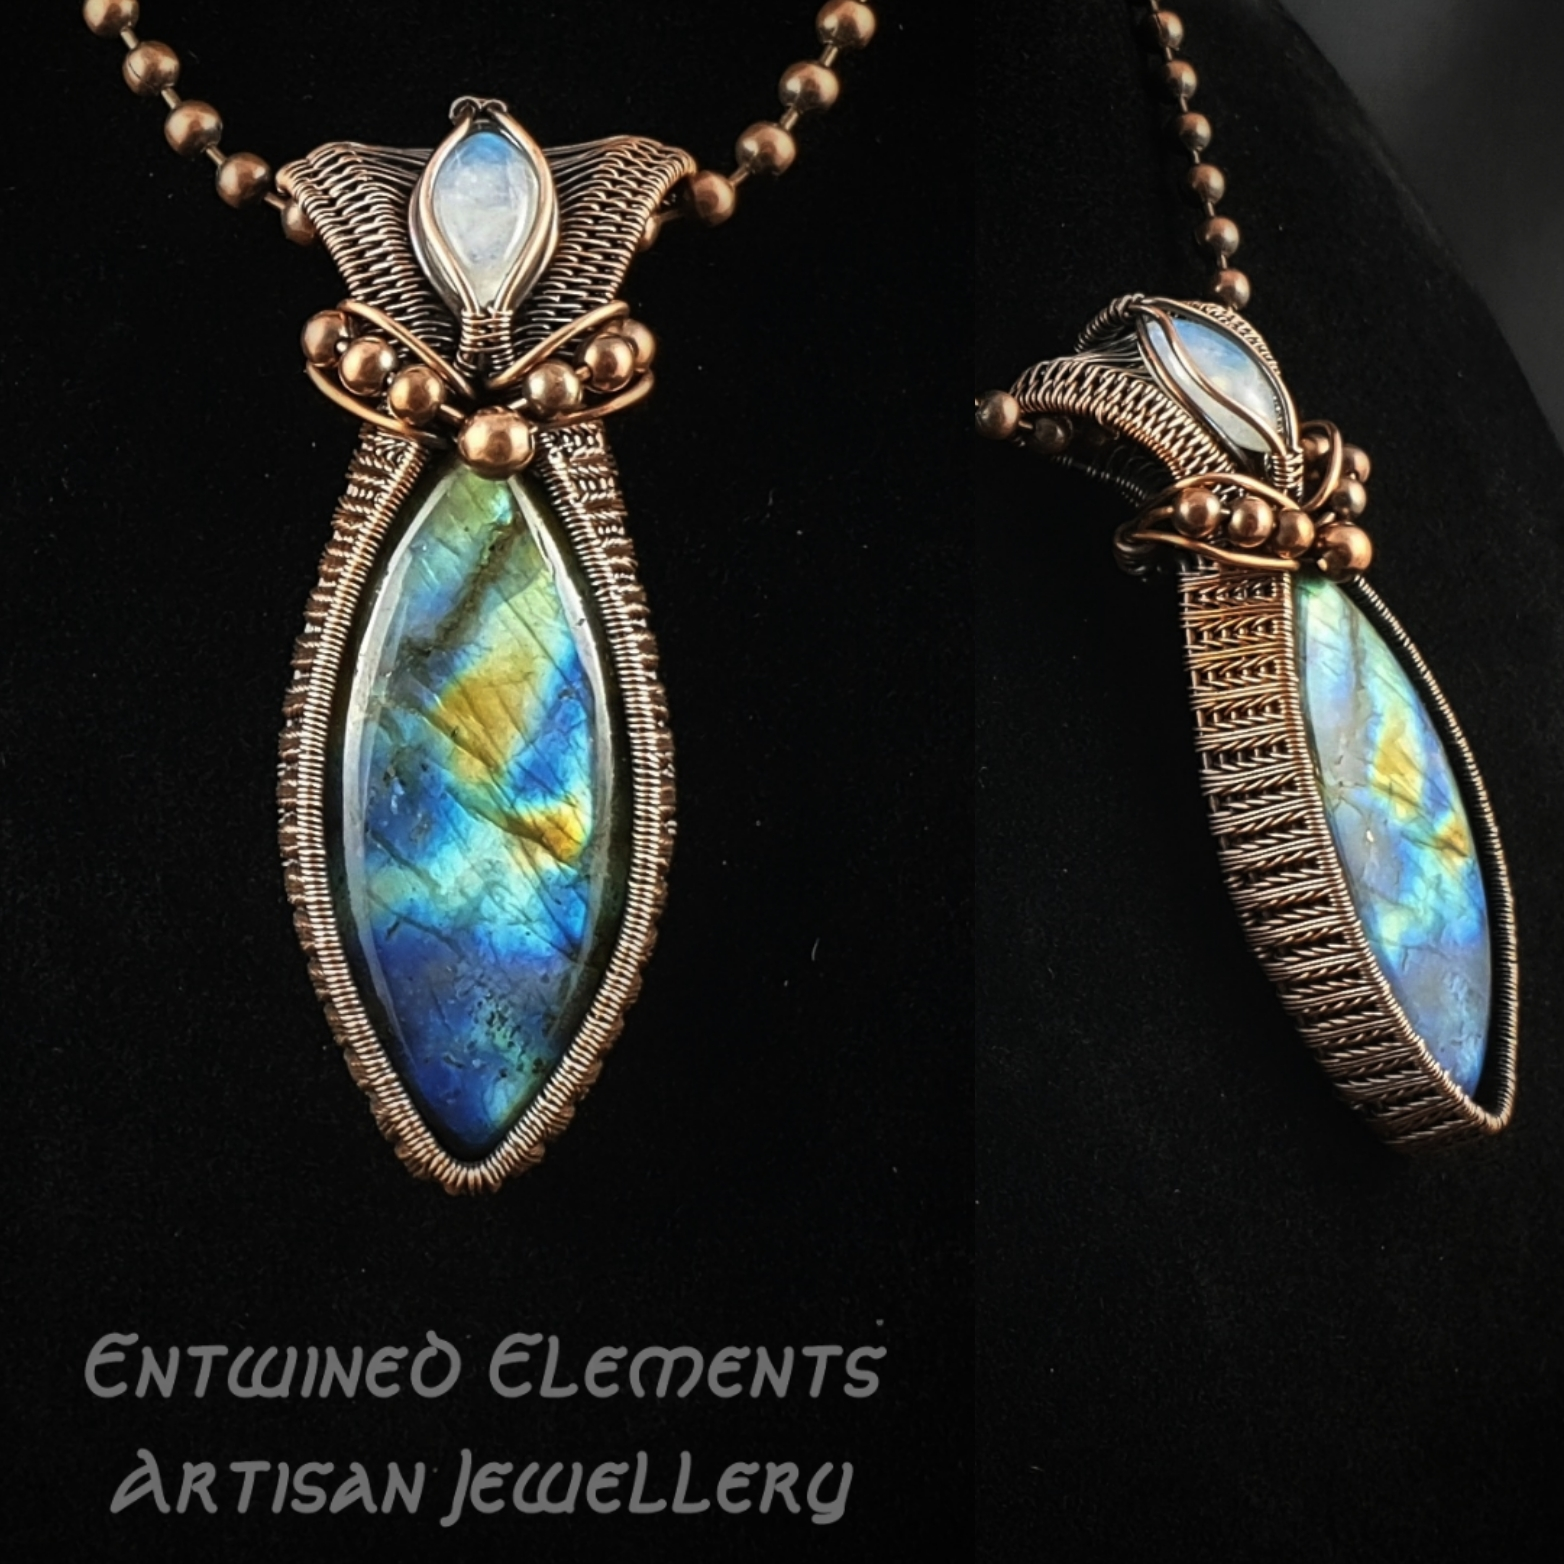 Gallery Entwined Elements Artisan Jewellery